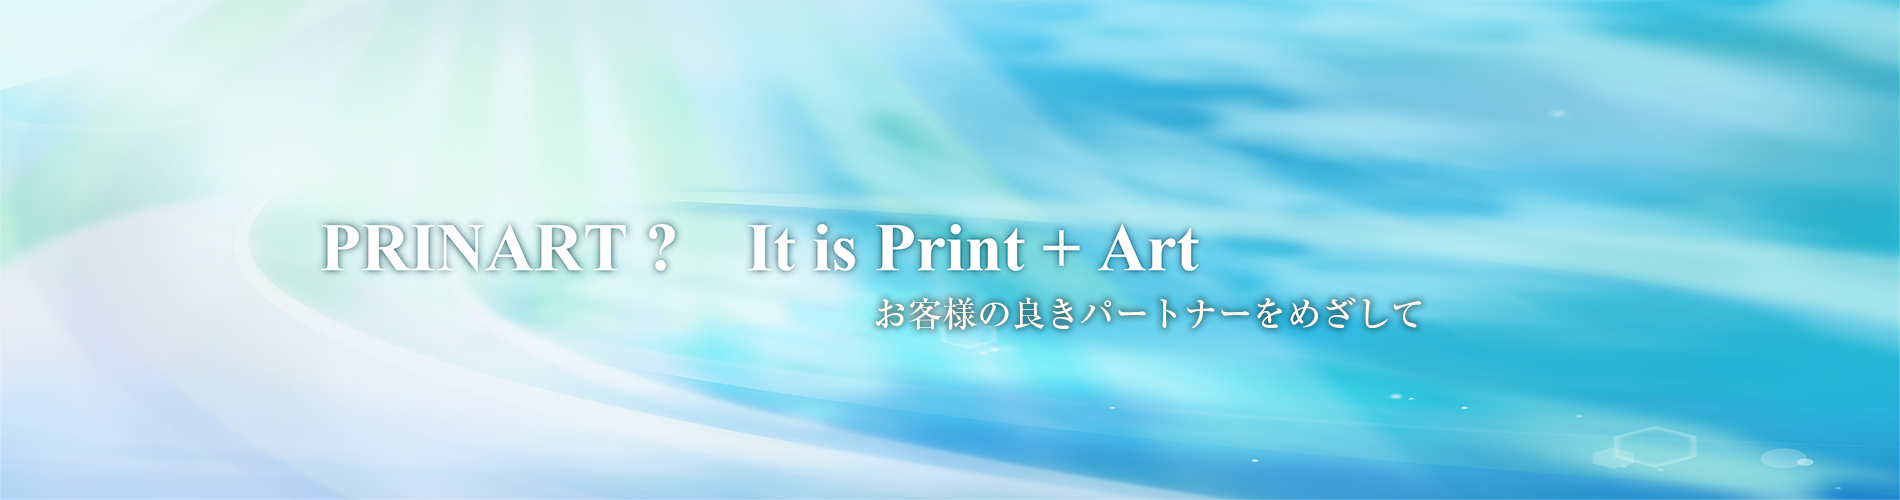 PRINART? It is Print+Art